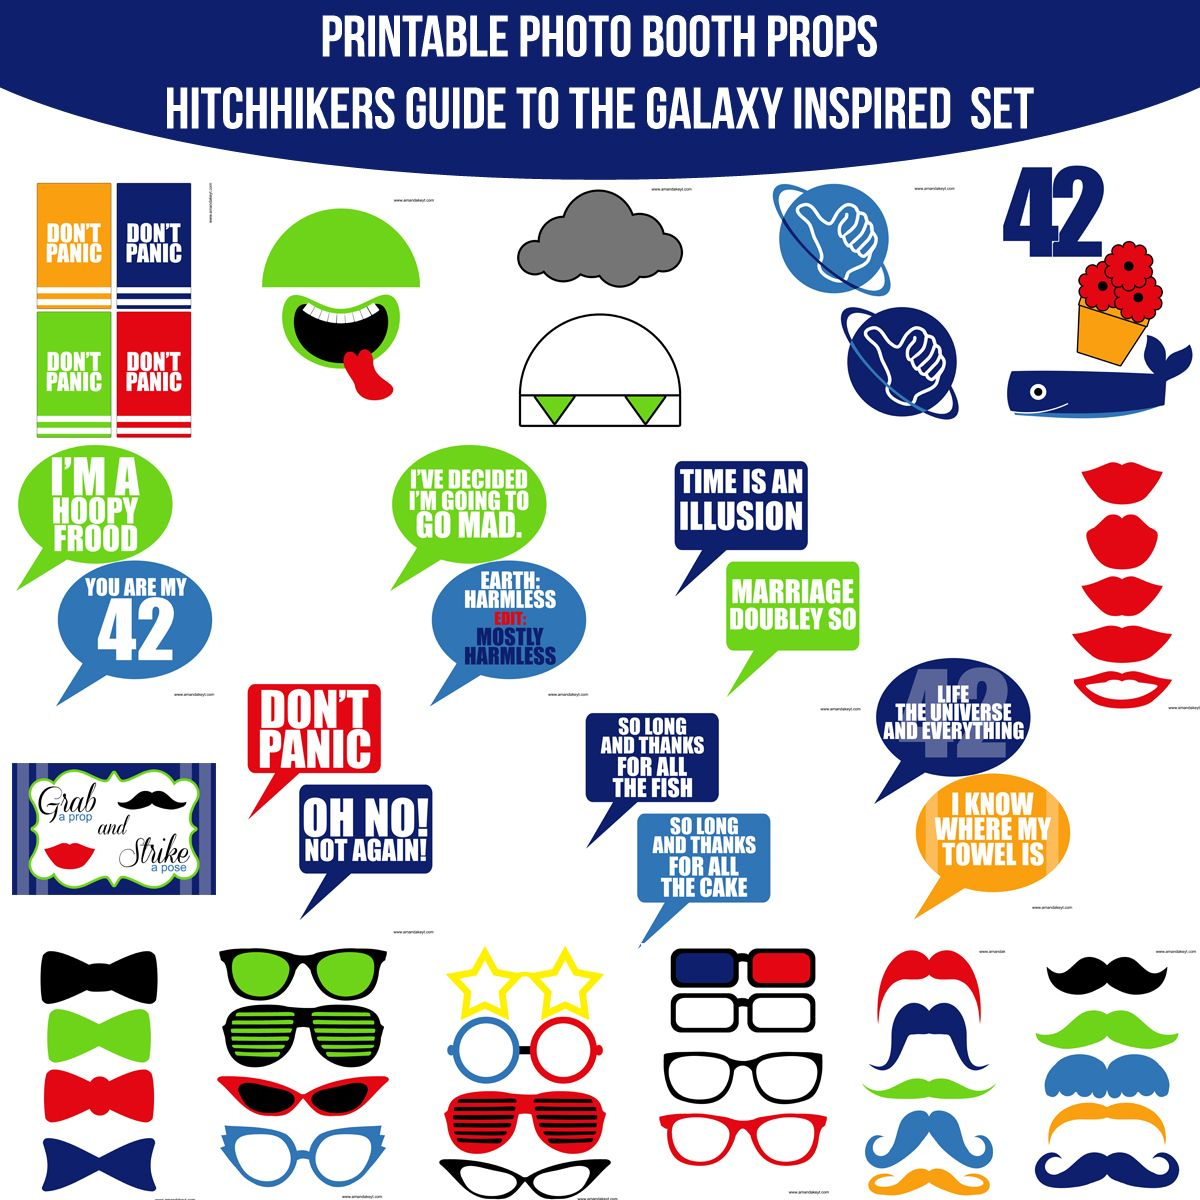 Instant Download Hitchhiker's Guide to the Galaxy Inspired Printable Photo Booth Prop Set — Amanda Keyt DIY Photo Booth Props & More!